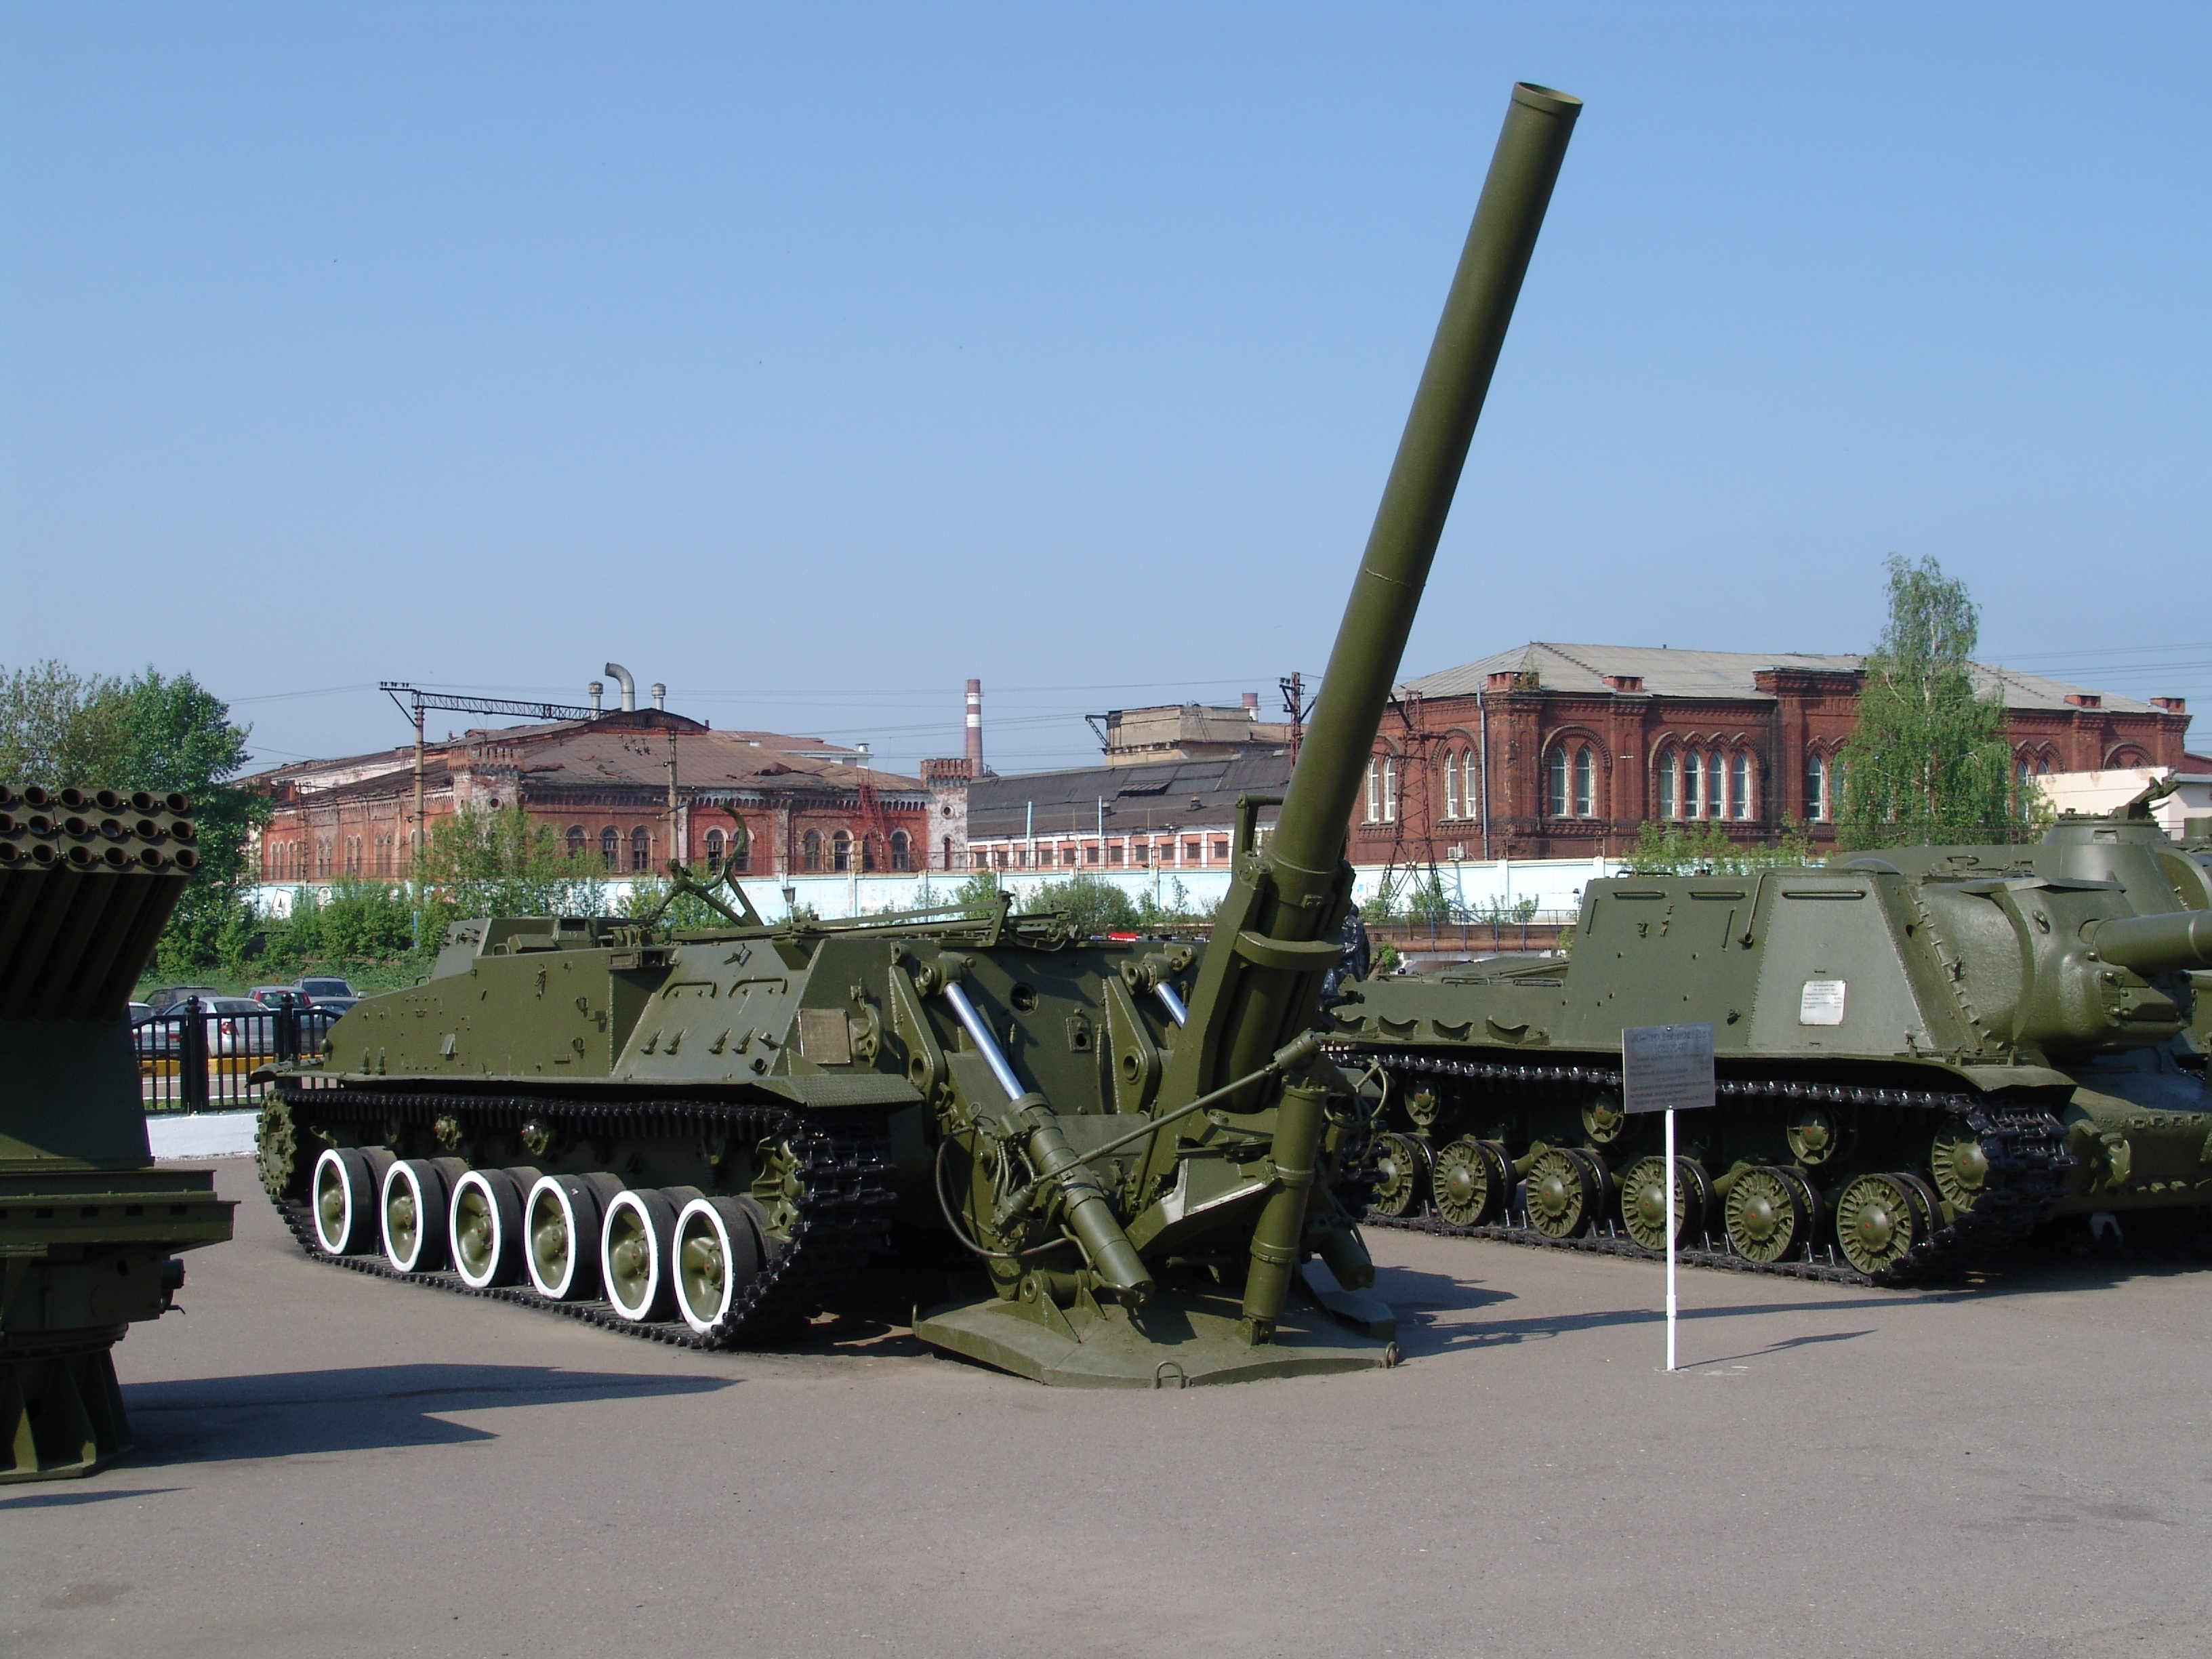 http://upload.wikimedia.org/wikipedia/commons/f/f9/240-mm_self-propelled_mortar_2B8_(SAC-2S4).JPG?uselang=ru